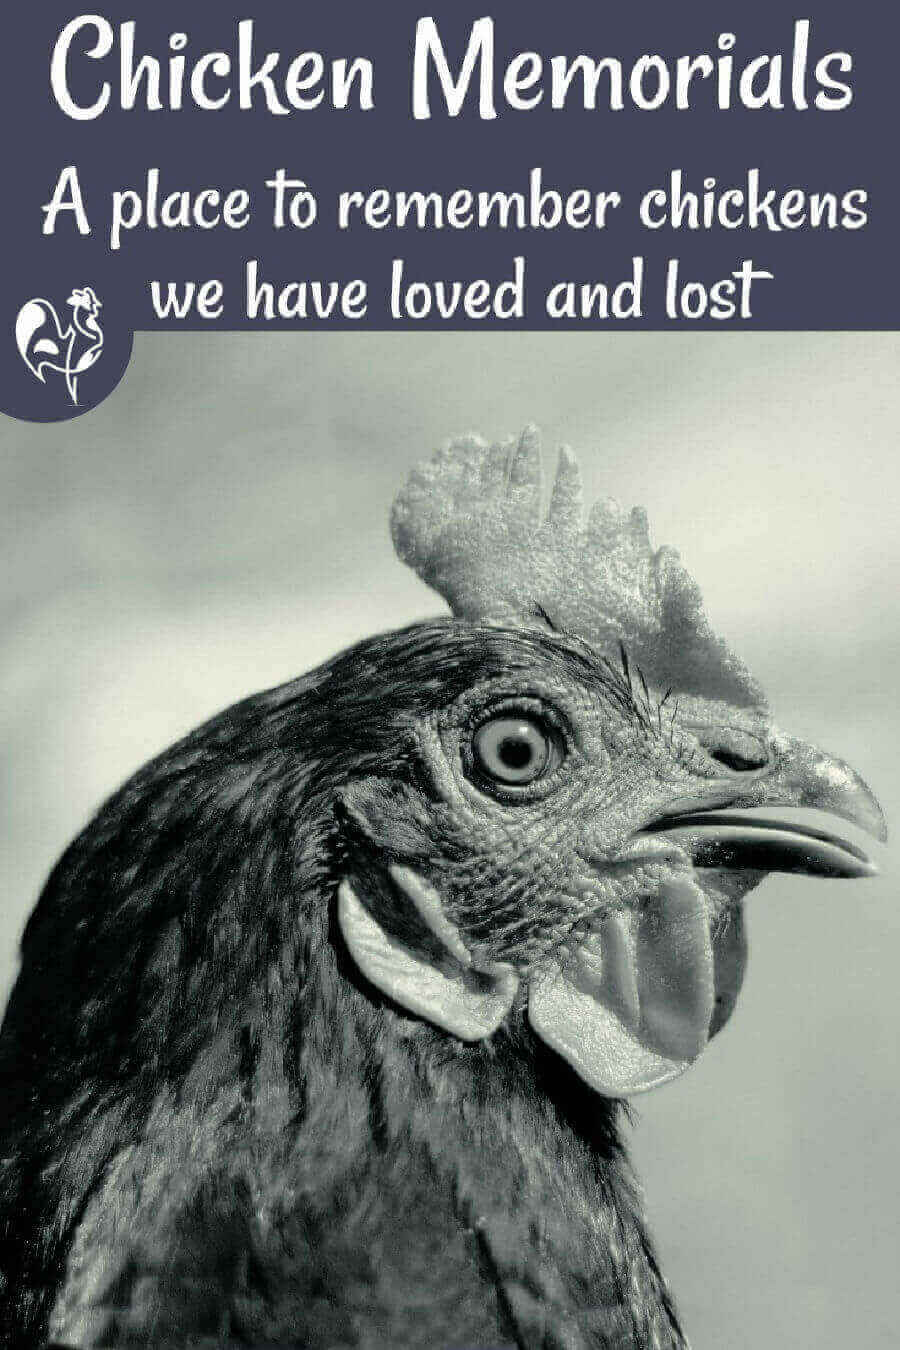 Chicken Memorials Pay Your Tribute To A Much Loved Hen Or Rooster